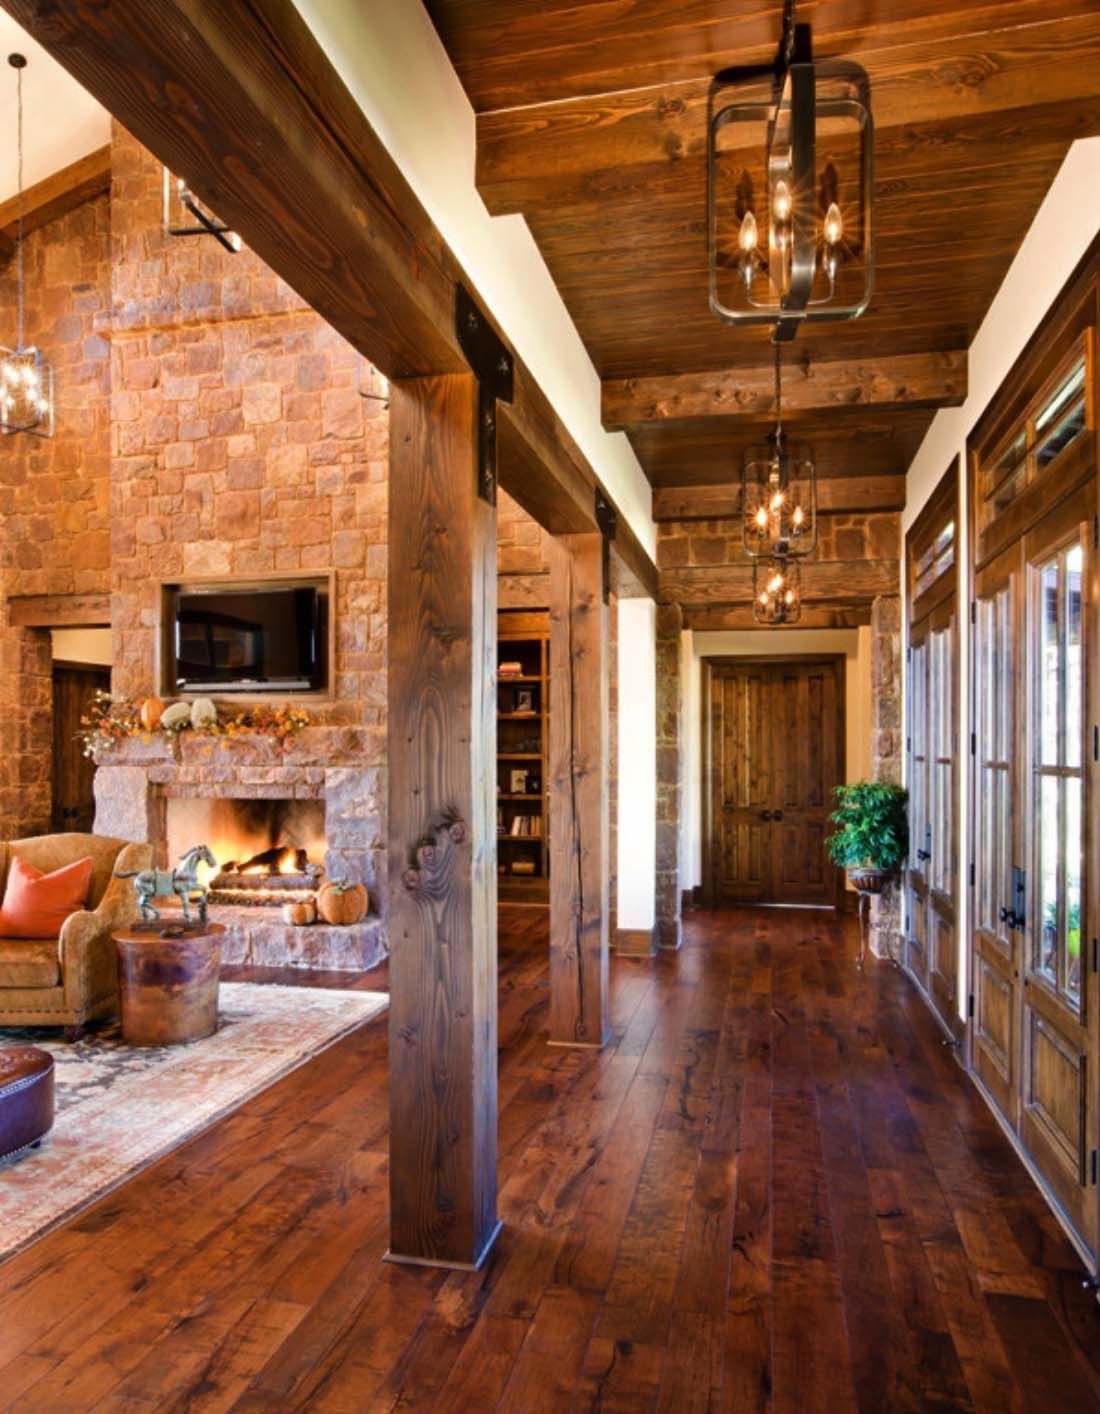 Rustic Texas hill country home blends with old world elegance  Rustic Texas hill country home blends with old world elegance